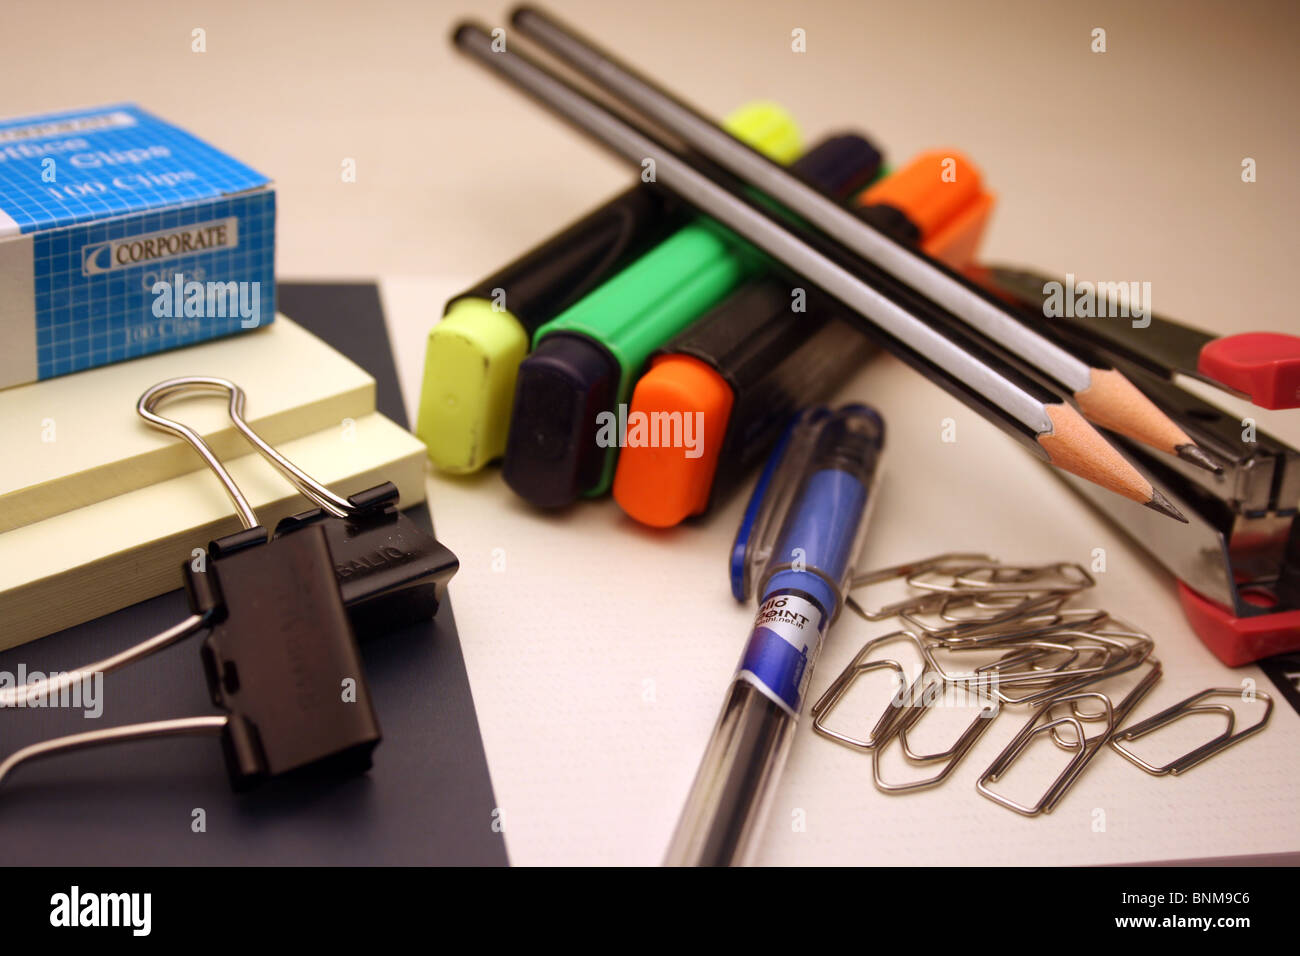 Office stationary close up - Stock Image